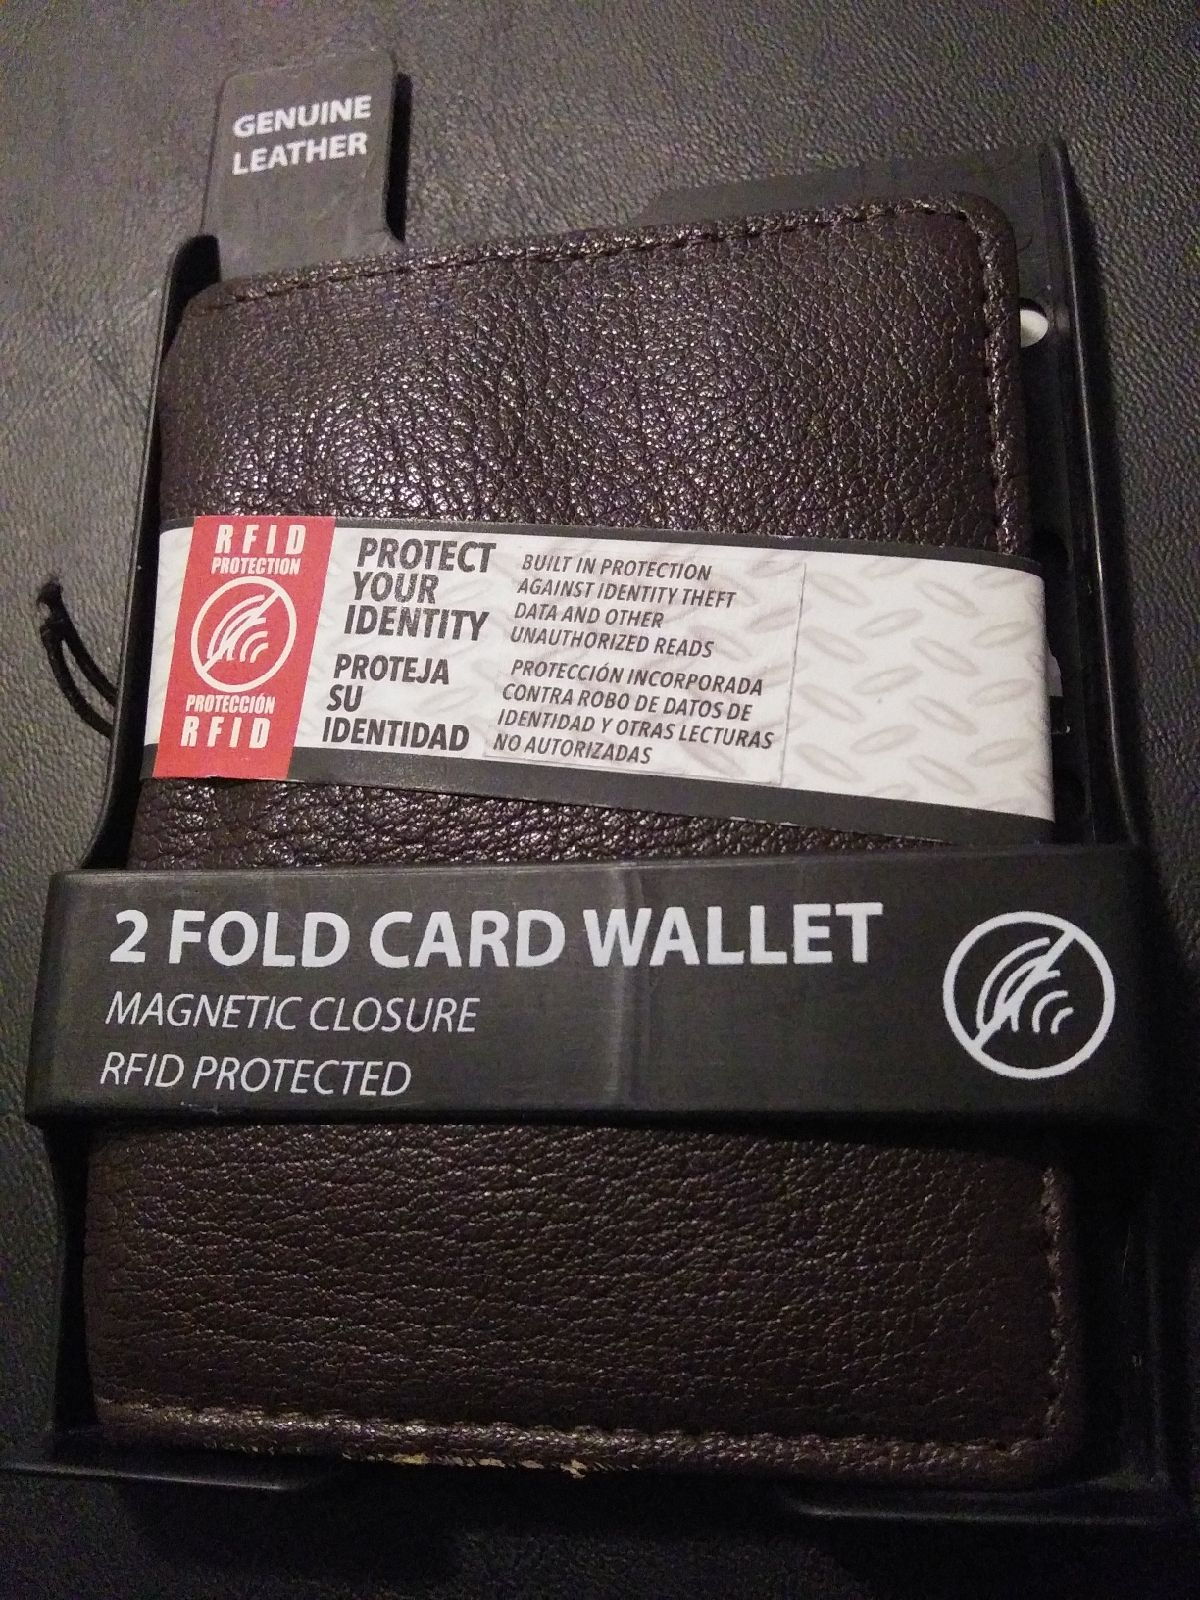 Leather 2 Fold Card Wallet with magnetic